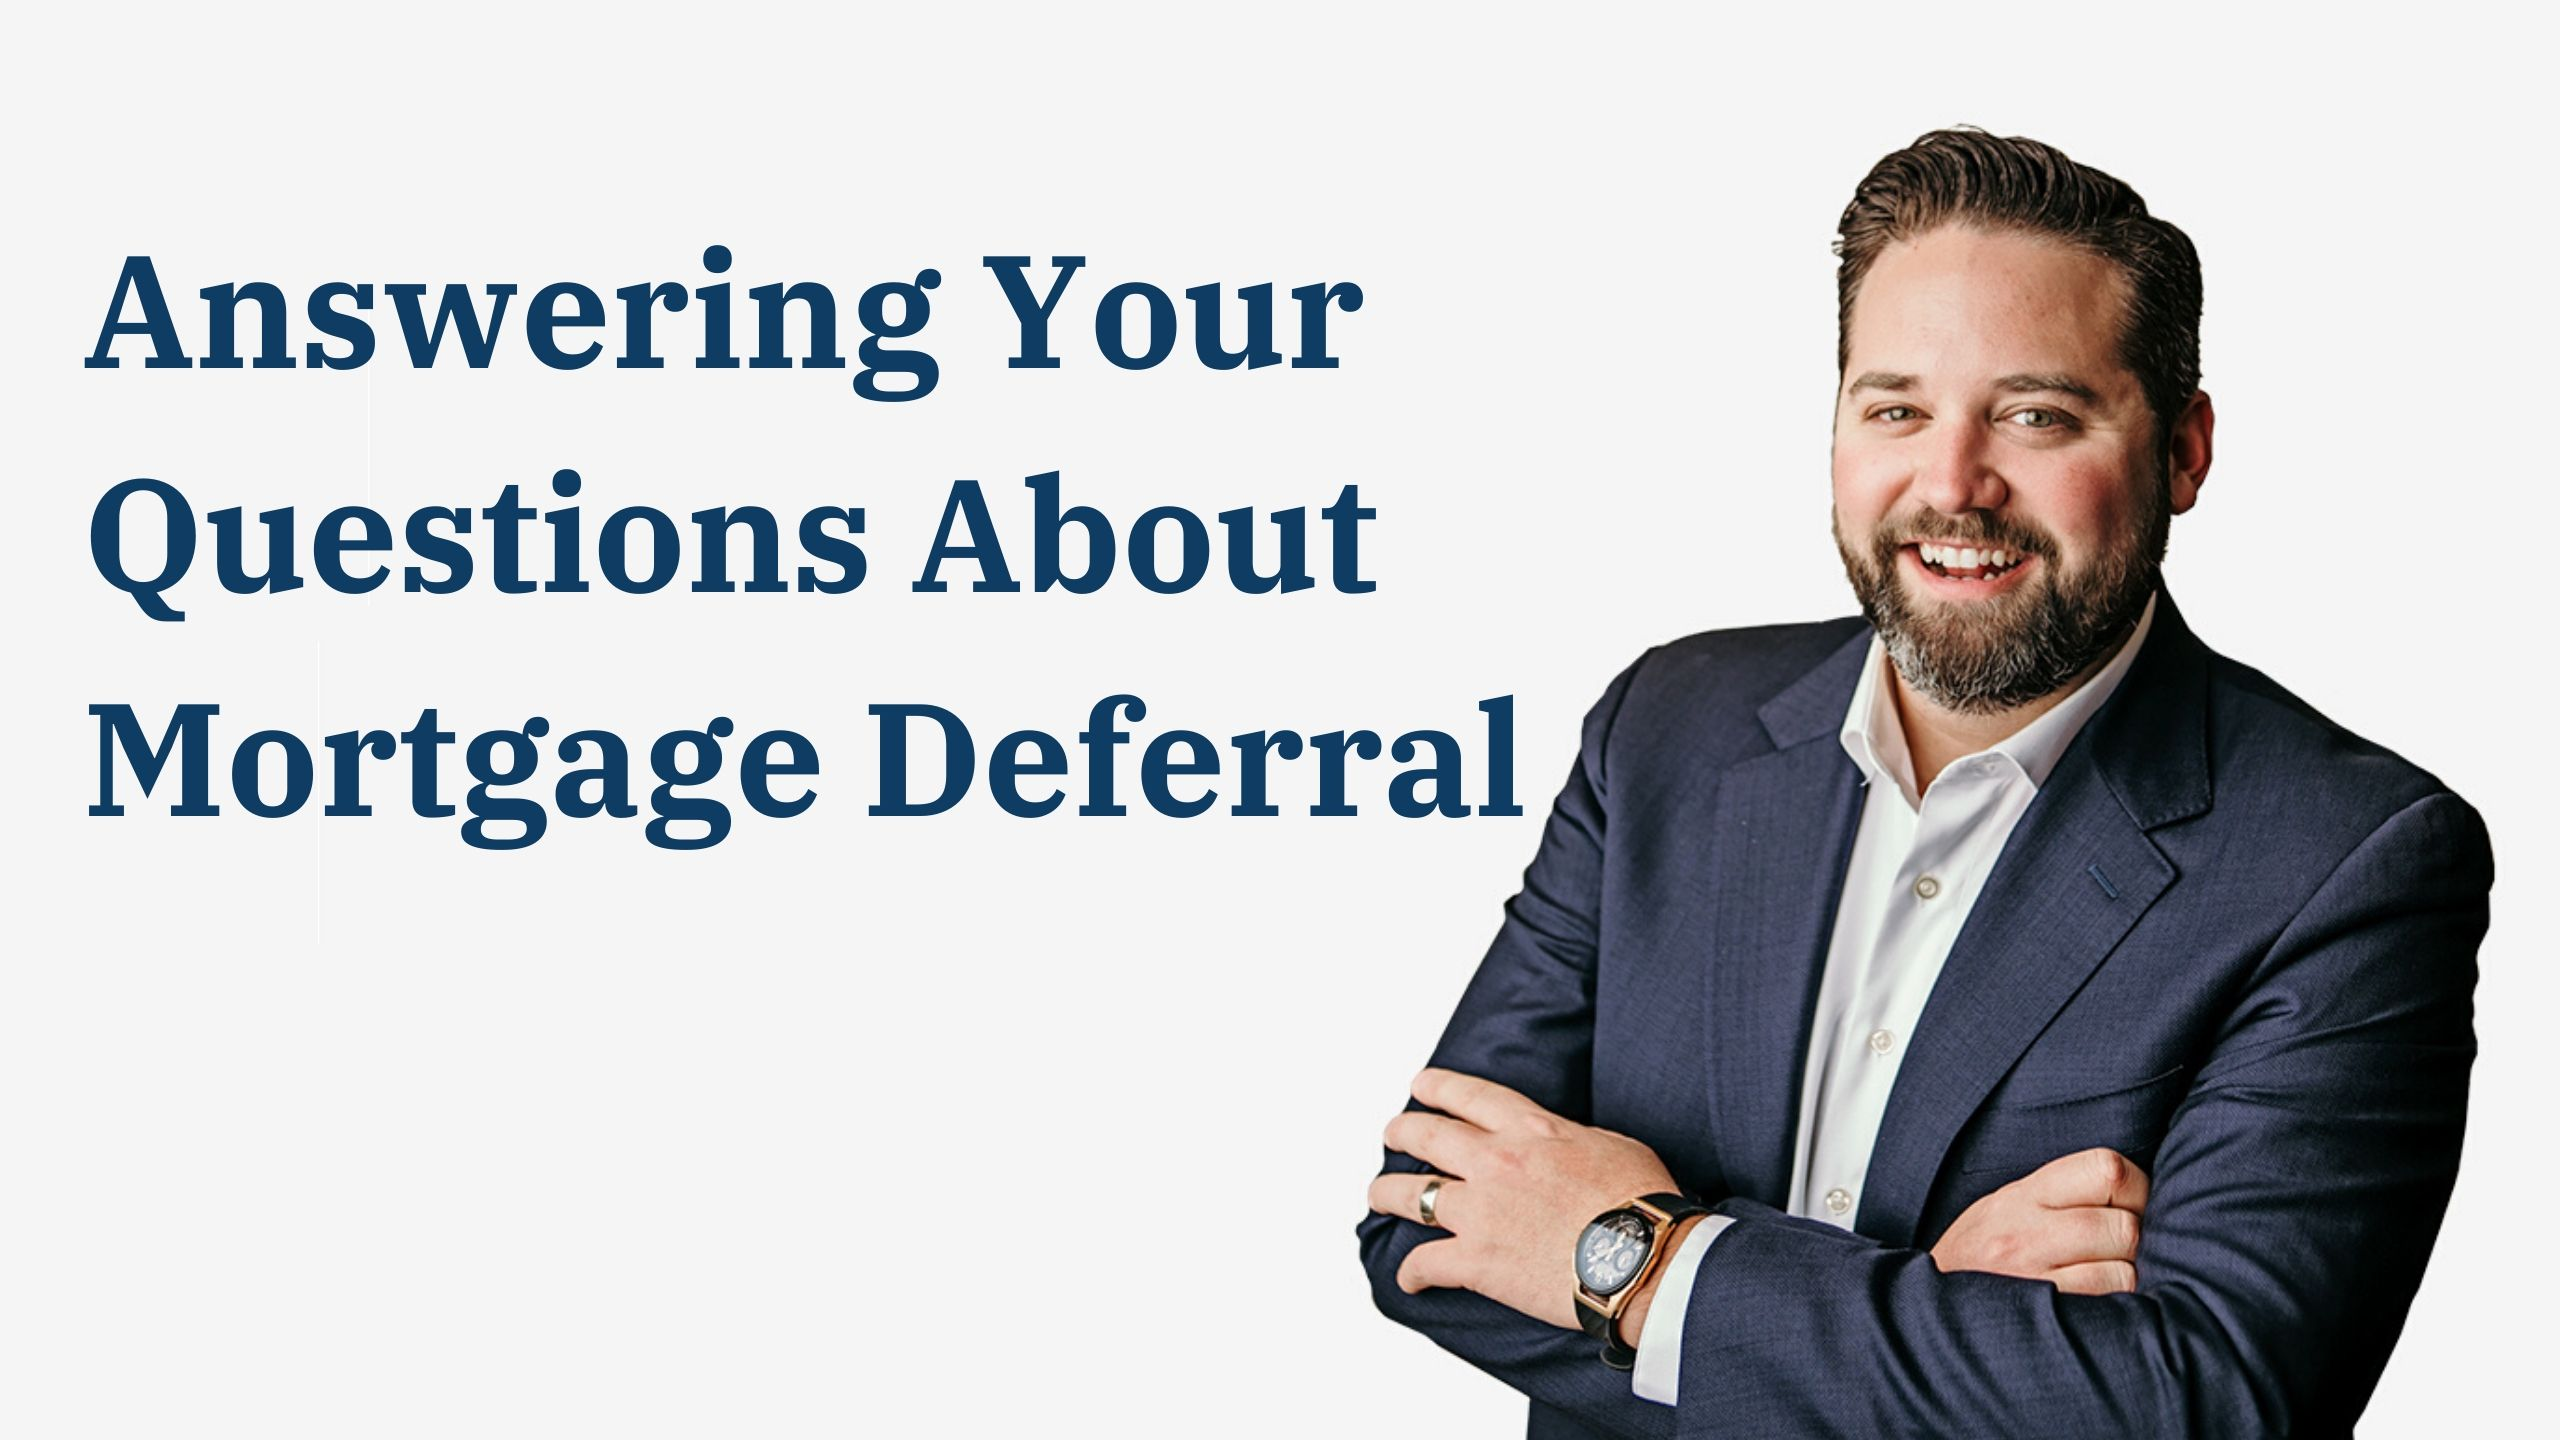 Answering Your Questions About Mortgage Deferral